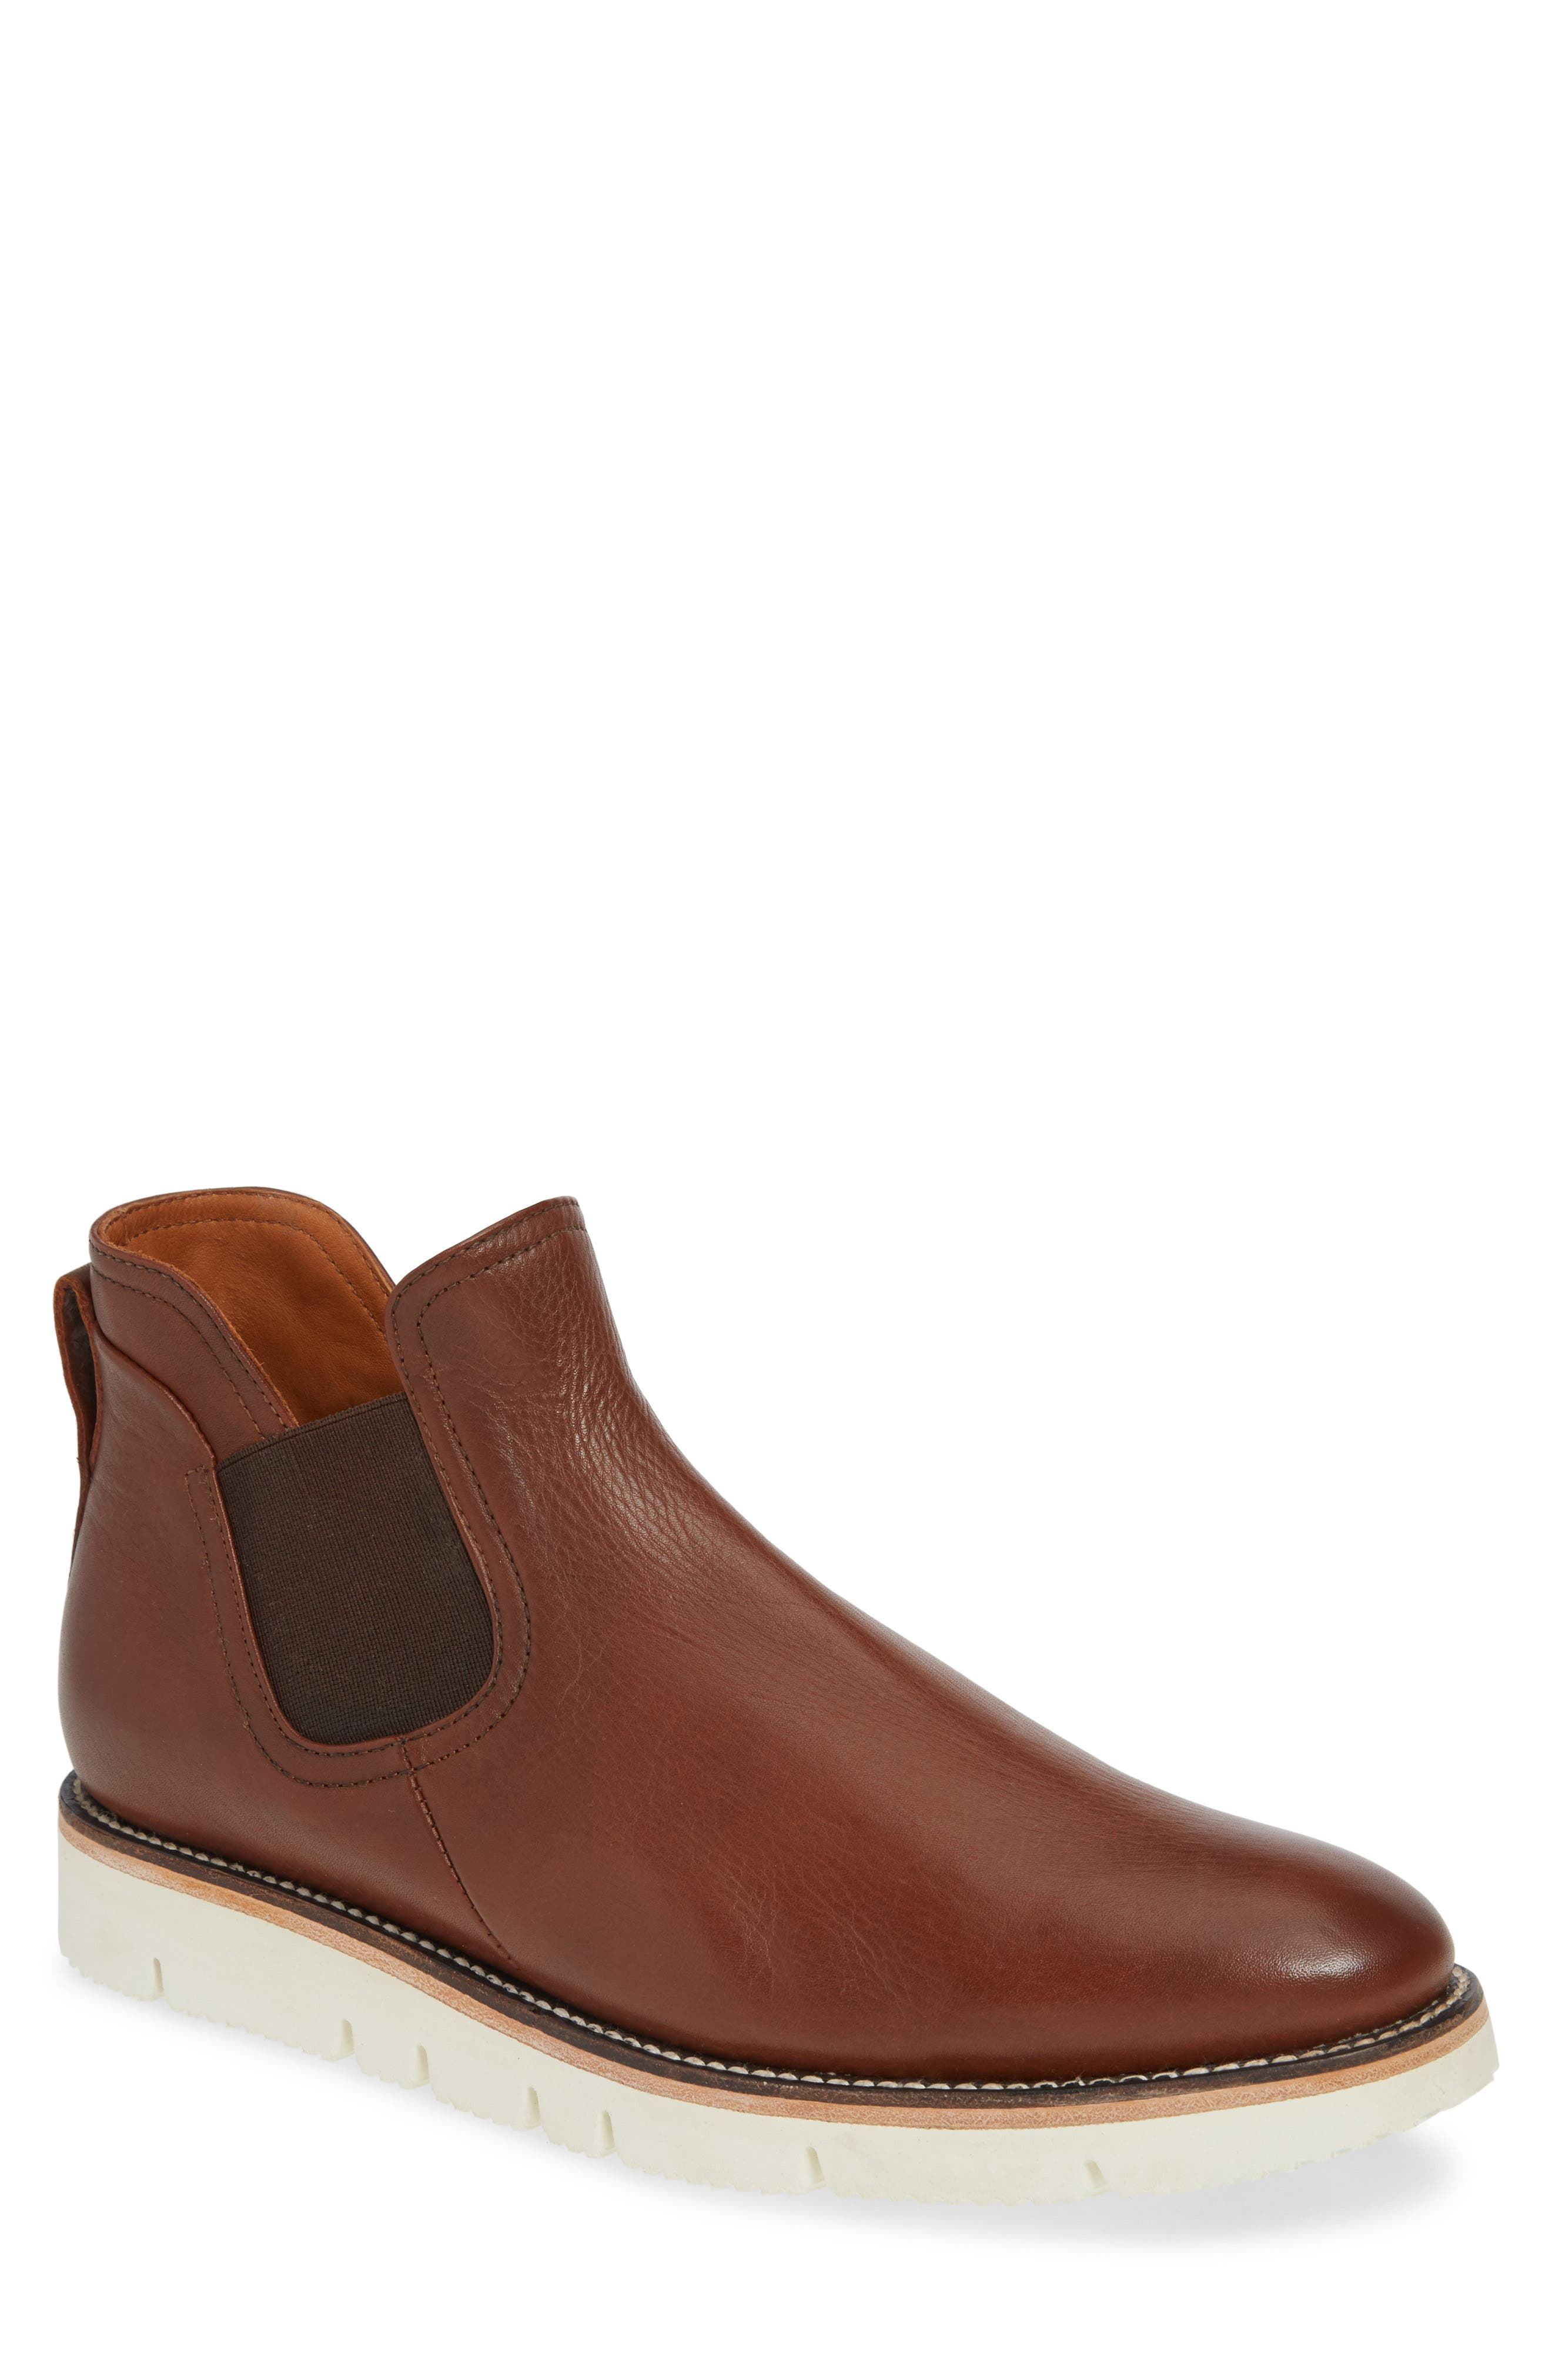 Ariat Uptown Mid Chelsea Boot- Brown